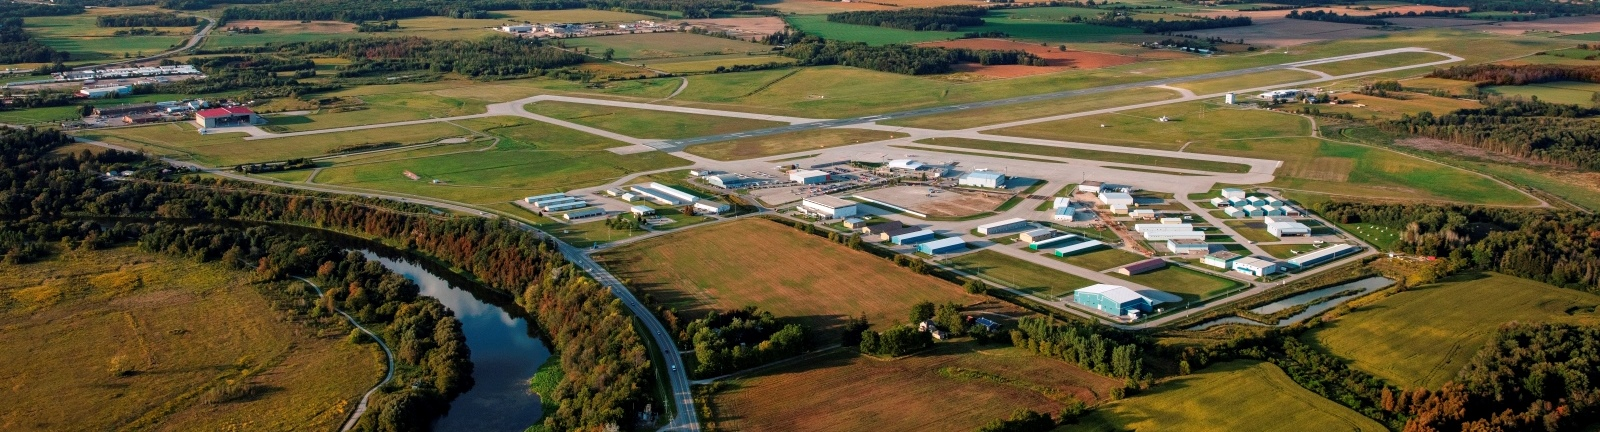 Aerial image of airport